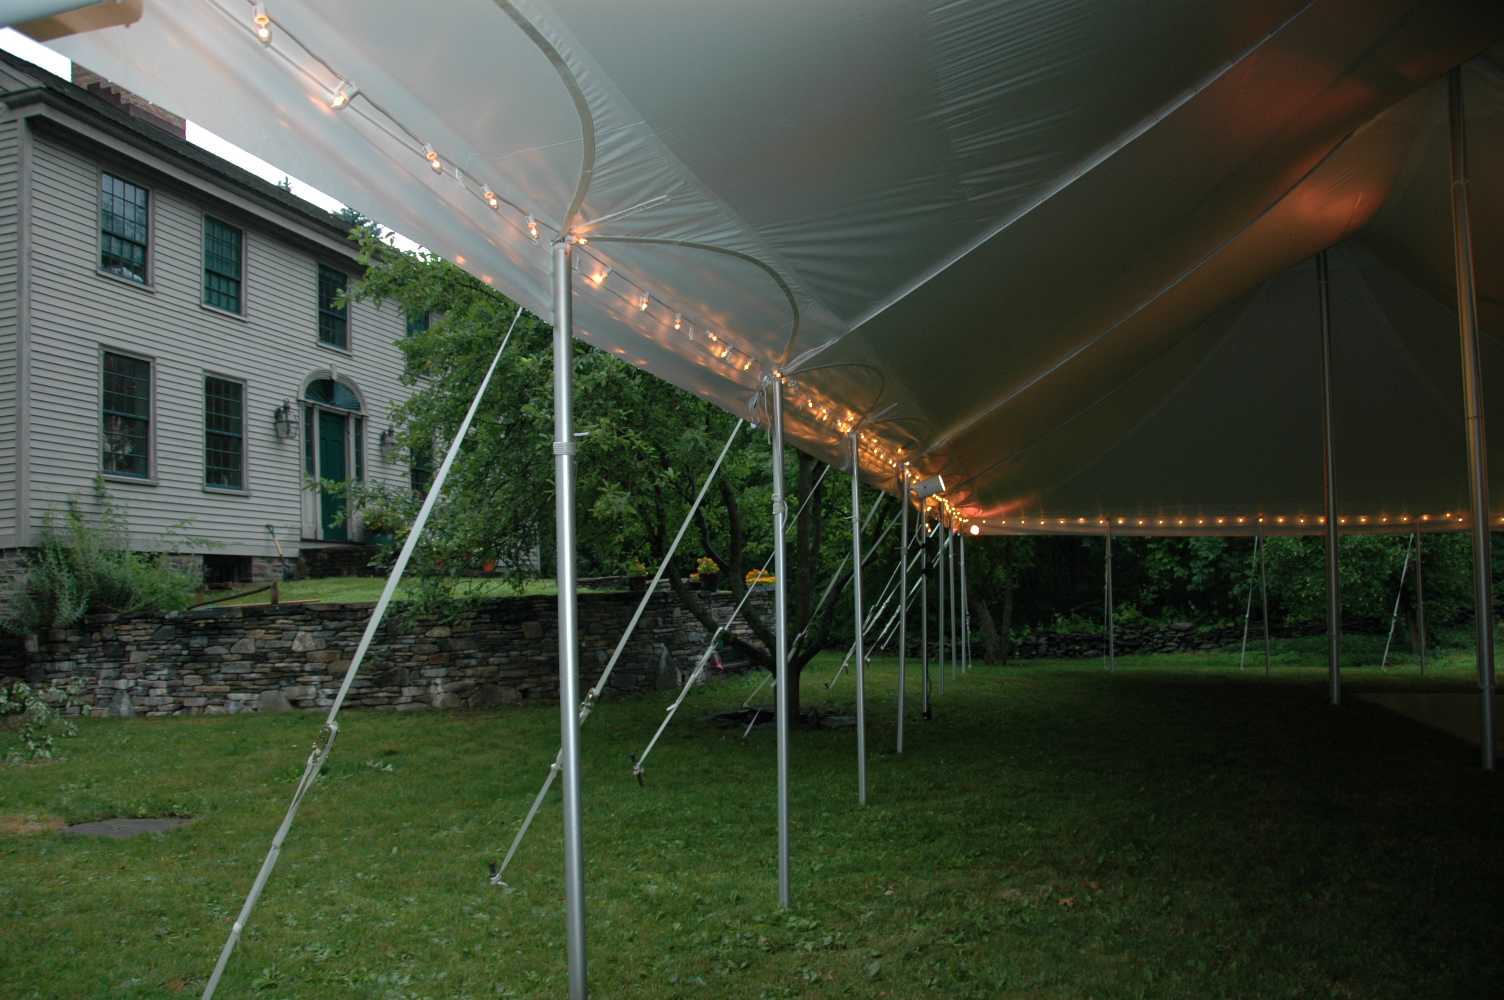 FileClassic Tent Lighting.JPG & File:Classic Tent Lighting.JPG - Wikimedia Commons